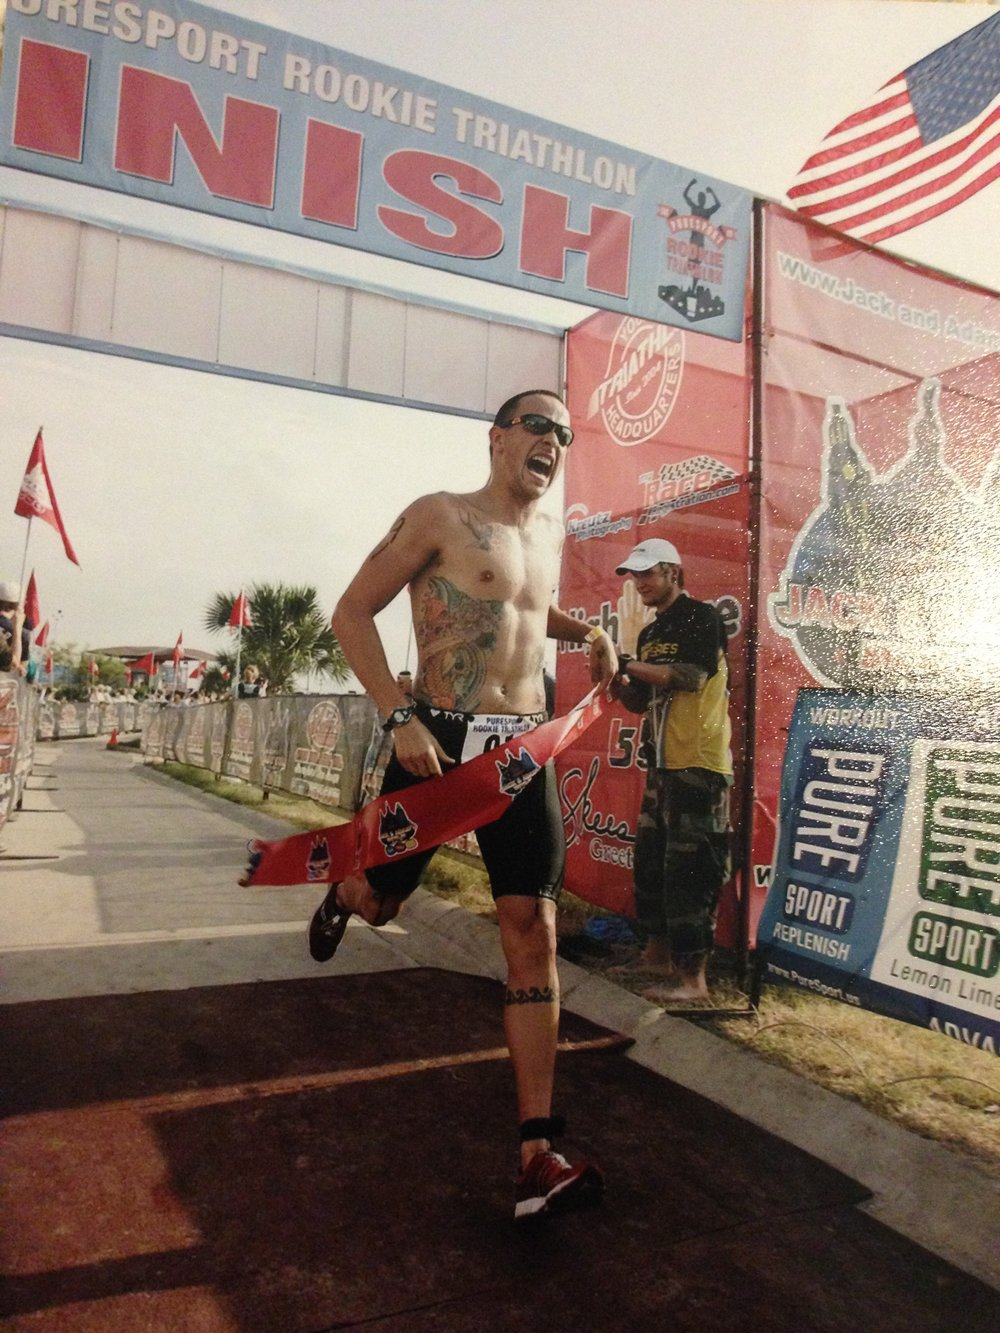 Tim Krauss - Austin, TX - Trail running, being a dad & husband!!!!